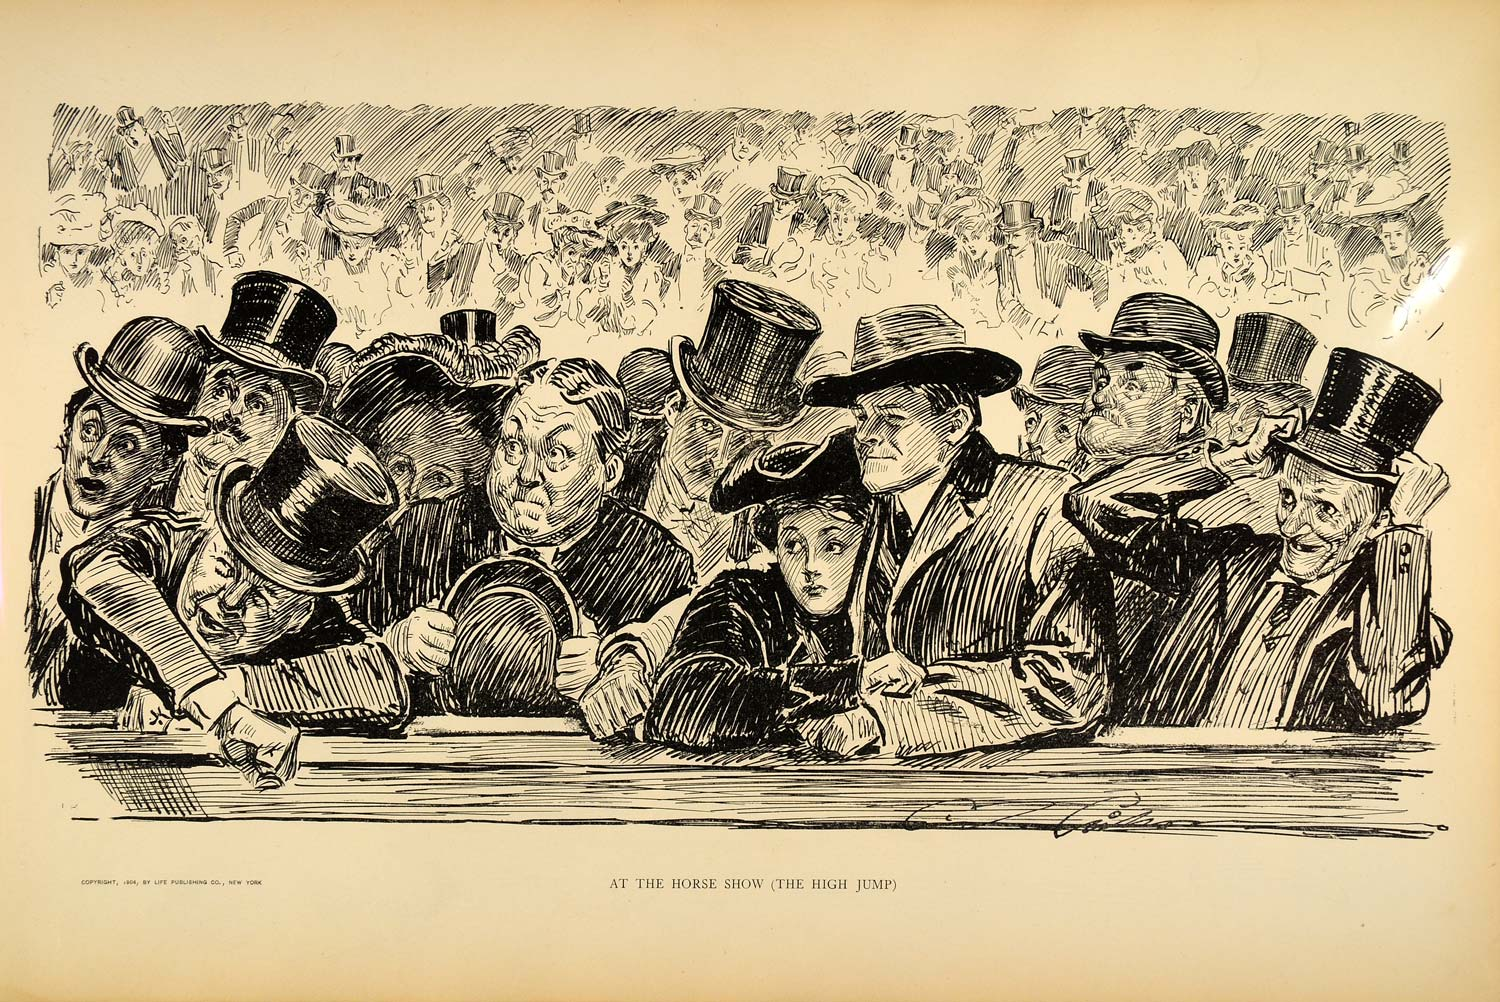 1906 Print Charles Dana Gibson Girl Horse Show Fans Victorian Spectators Drawing